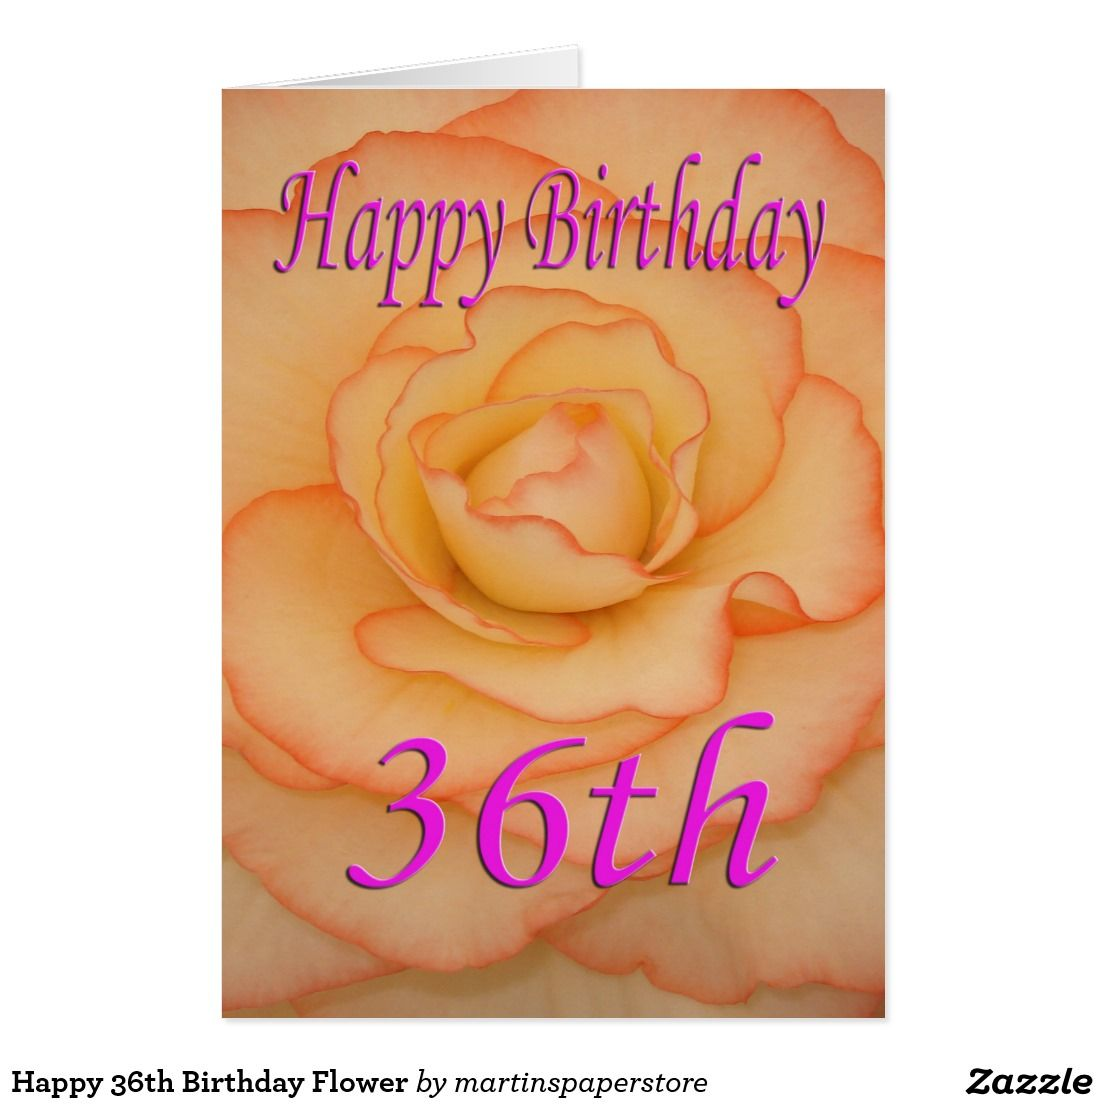 Happy 36th Birthday Flower Card Birthday Cards Pinterest 36th